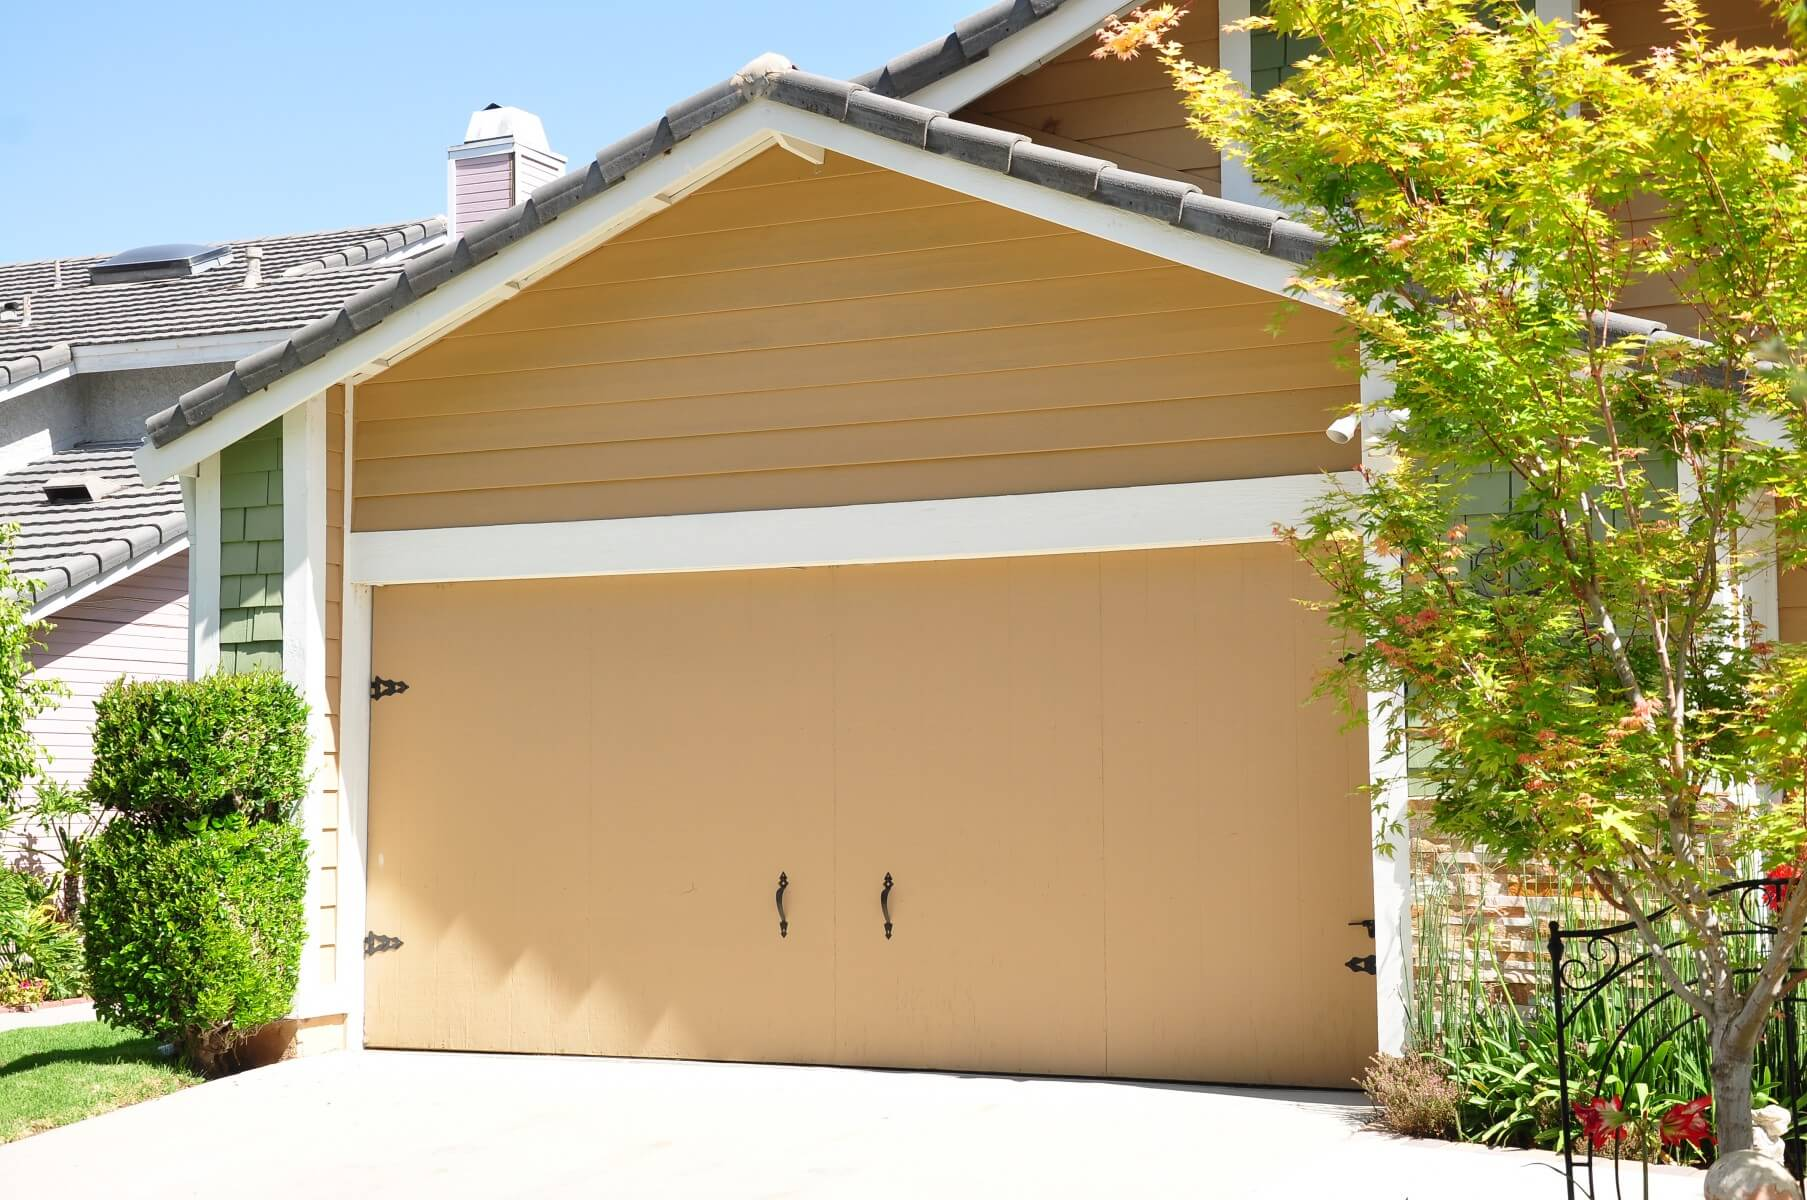 Better curb appeal at this simi valley home with a new garage door before simi valley garage door replacement 2 rubansaba